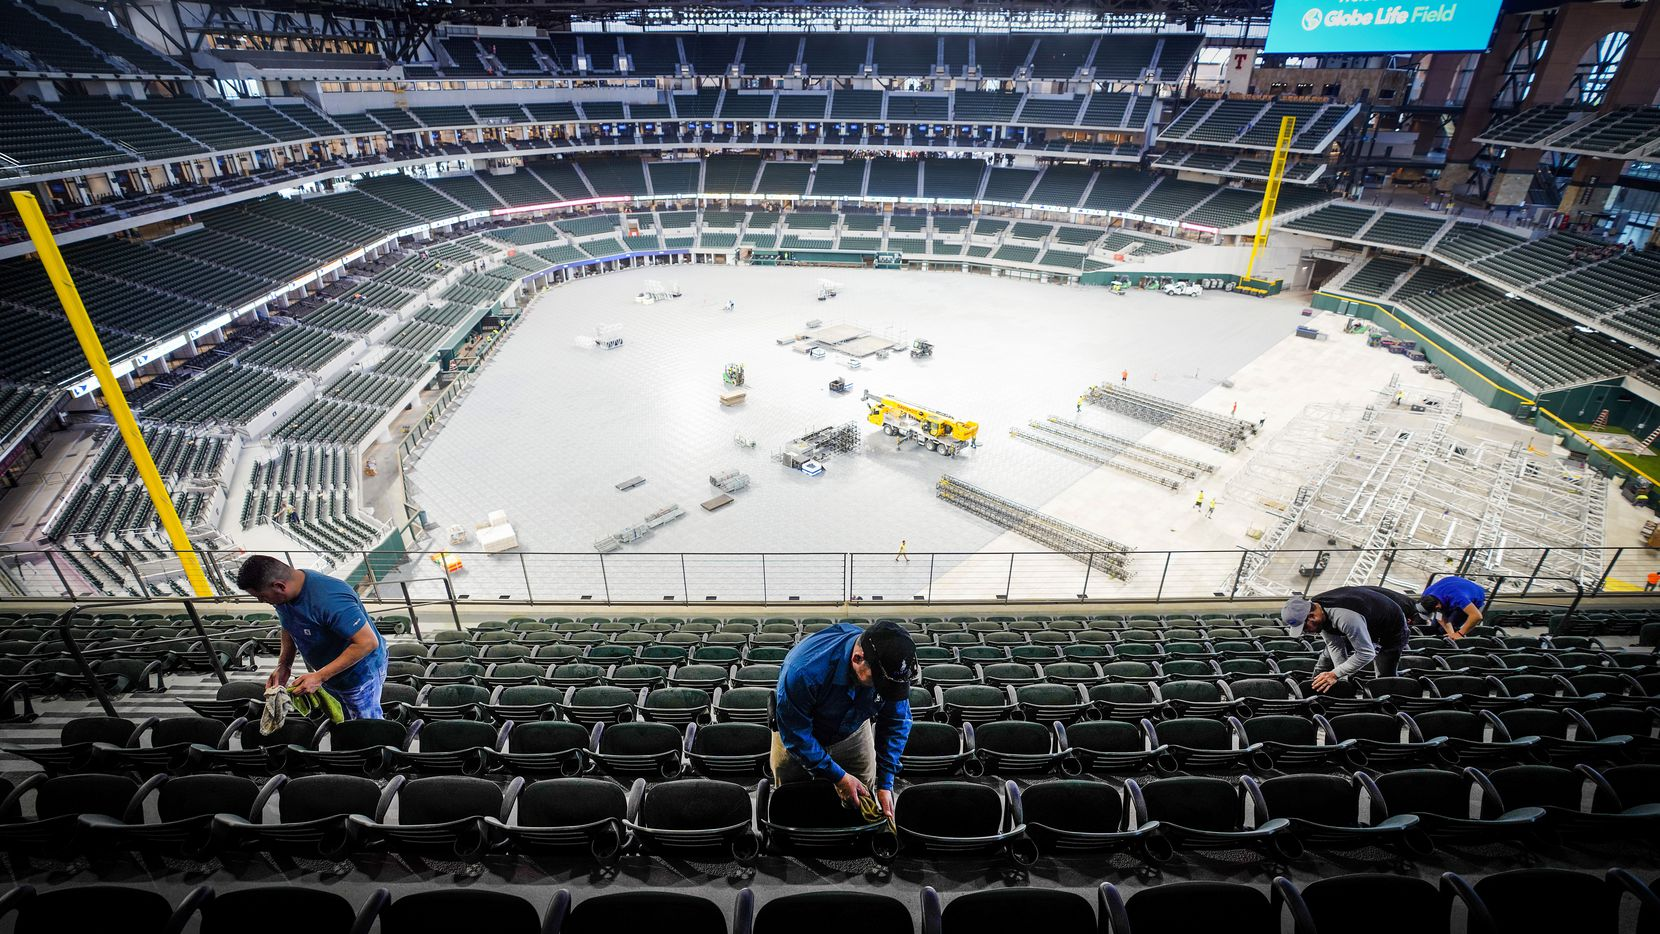 Crews clean seats on the upper concourse at the Texas Rangers' new Globe Life Field as preparations for an upcoming concert are made on the stadium floor on Wednesday, March 11, 2020, in Arlington.